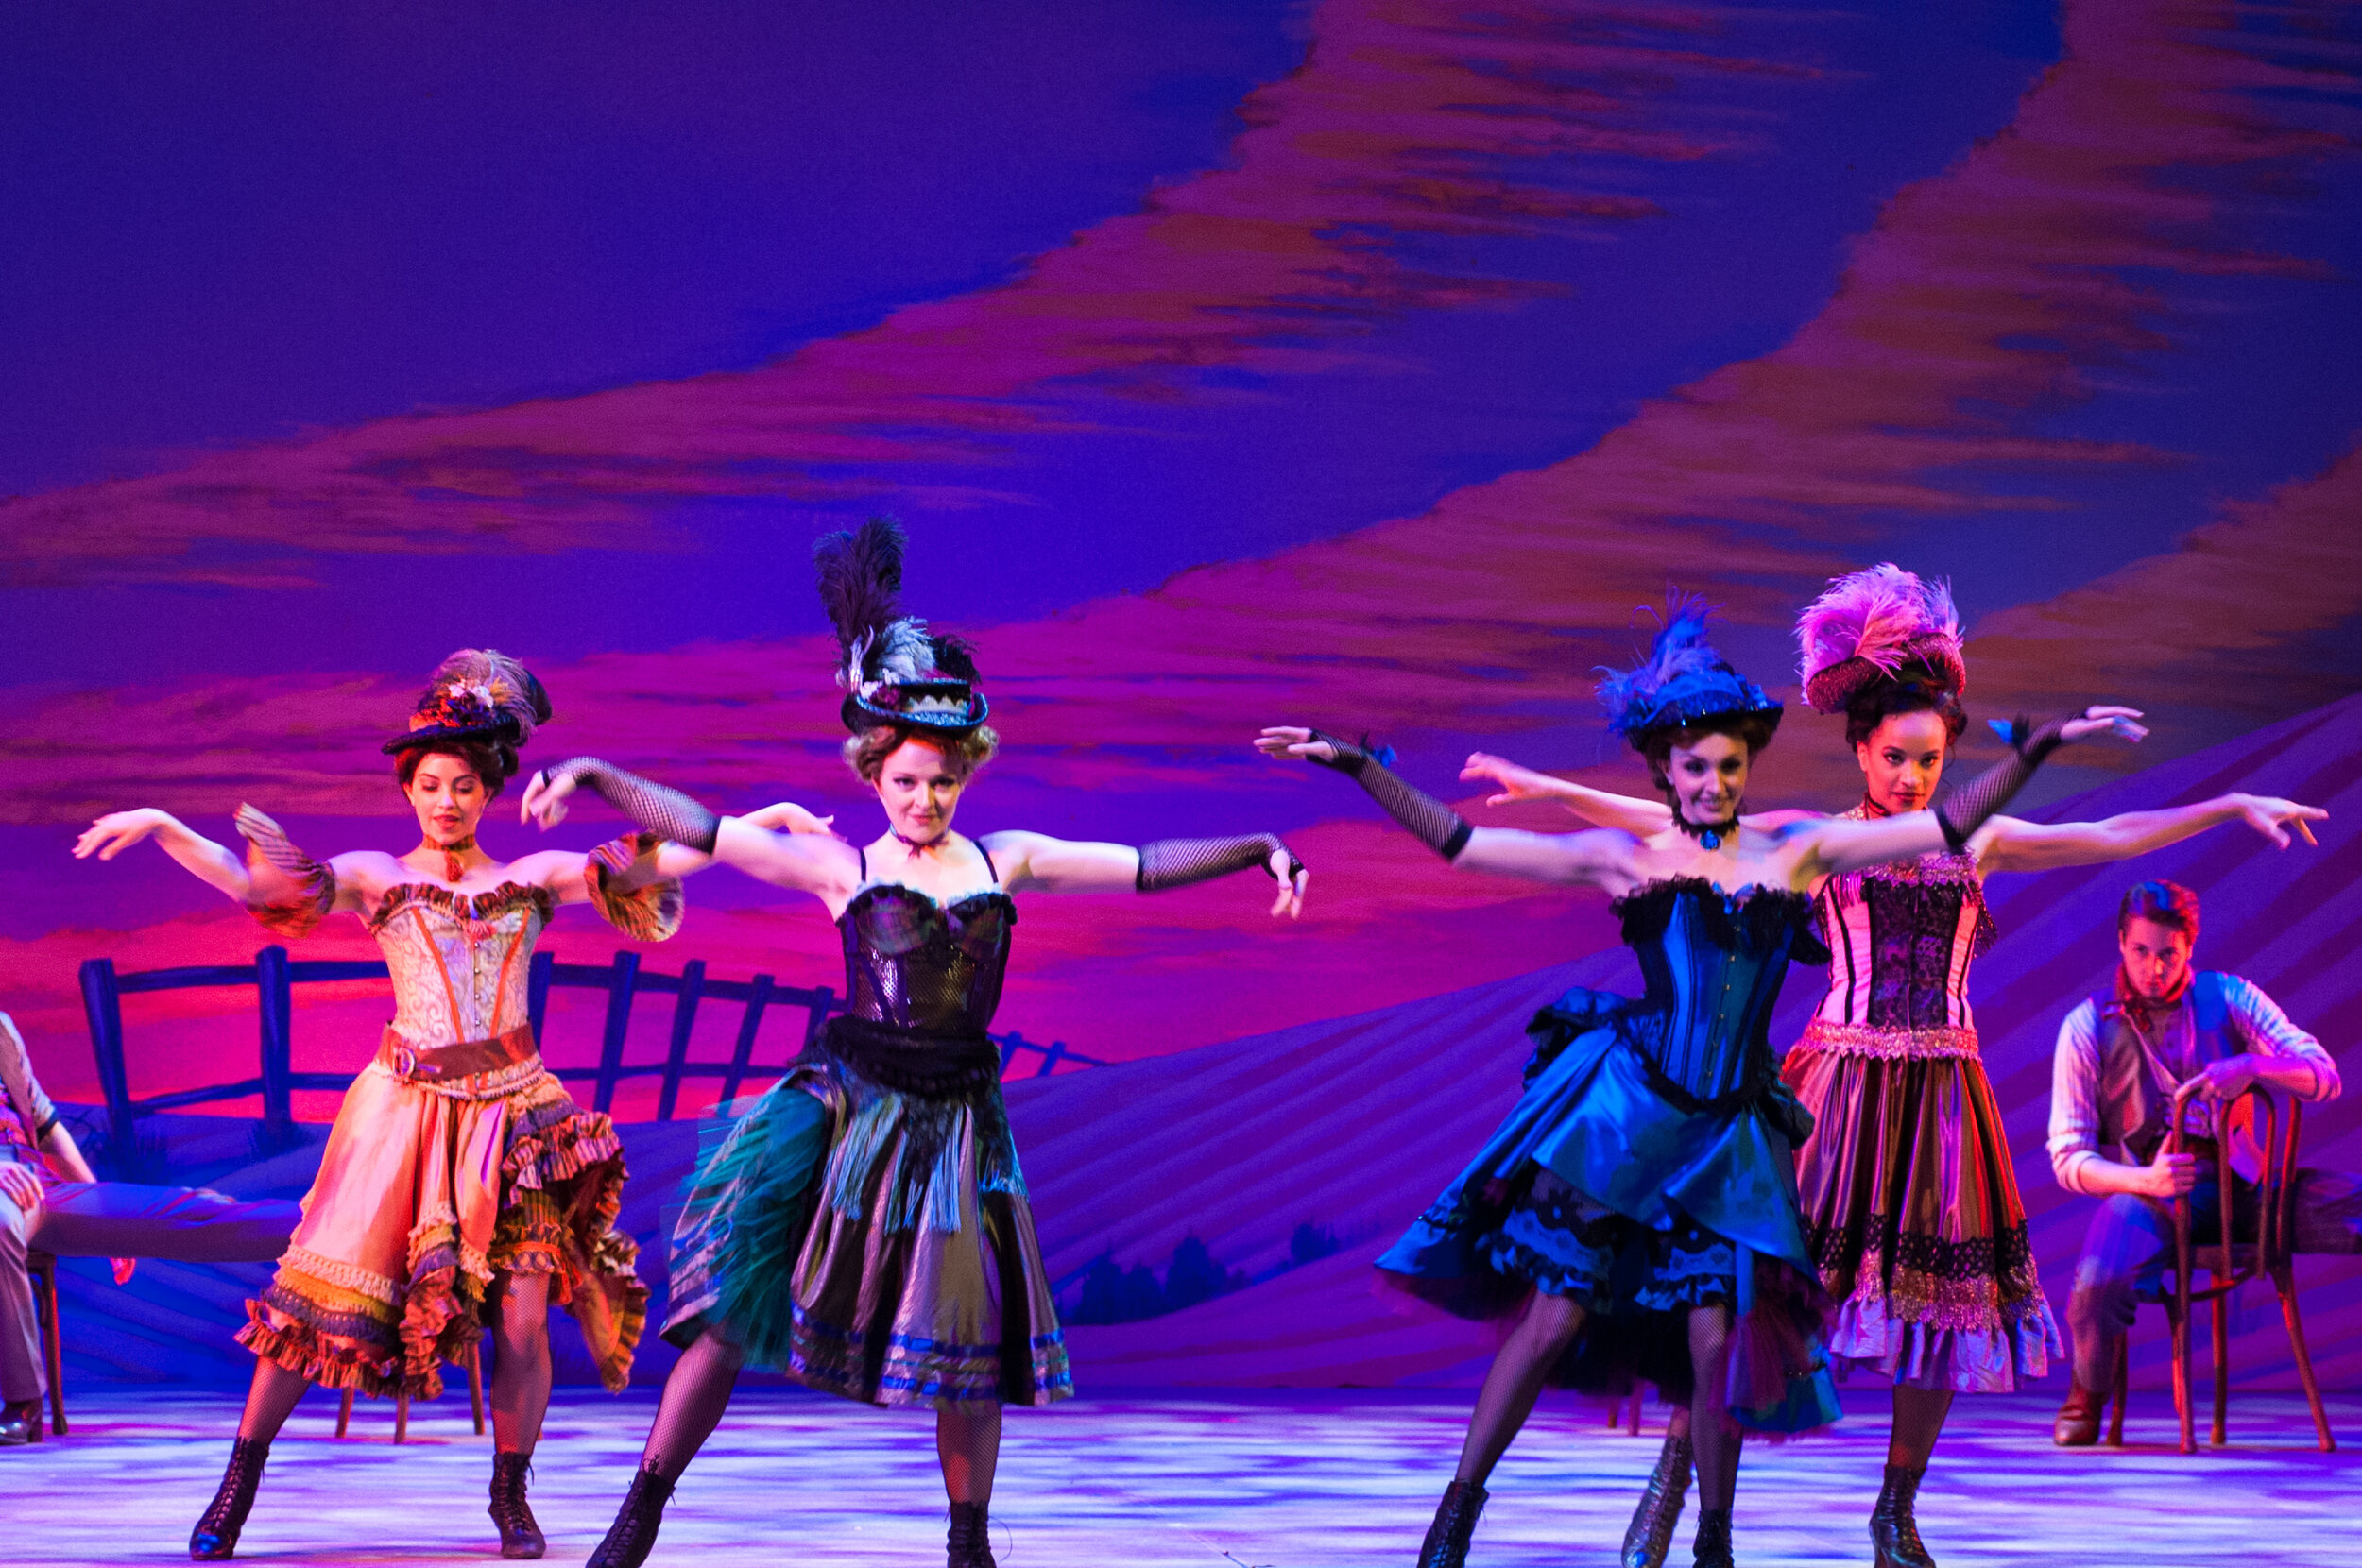 Dream Ballet Saloon Girl Hats- Oklahoma!- Music Theatre Wichita 2016  Costume Design by Debbie Roberts. All designs by the seasonal staff of MTW. Photos courtesy of Christopher Clark and Jerry Fritchman.